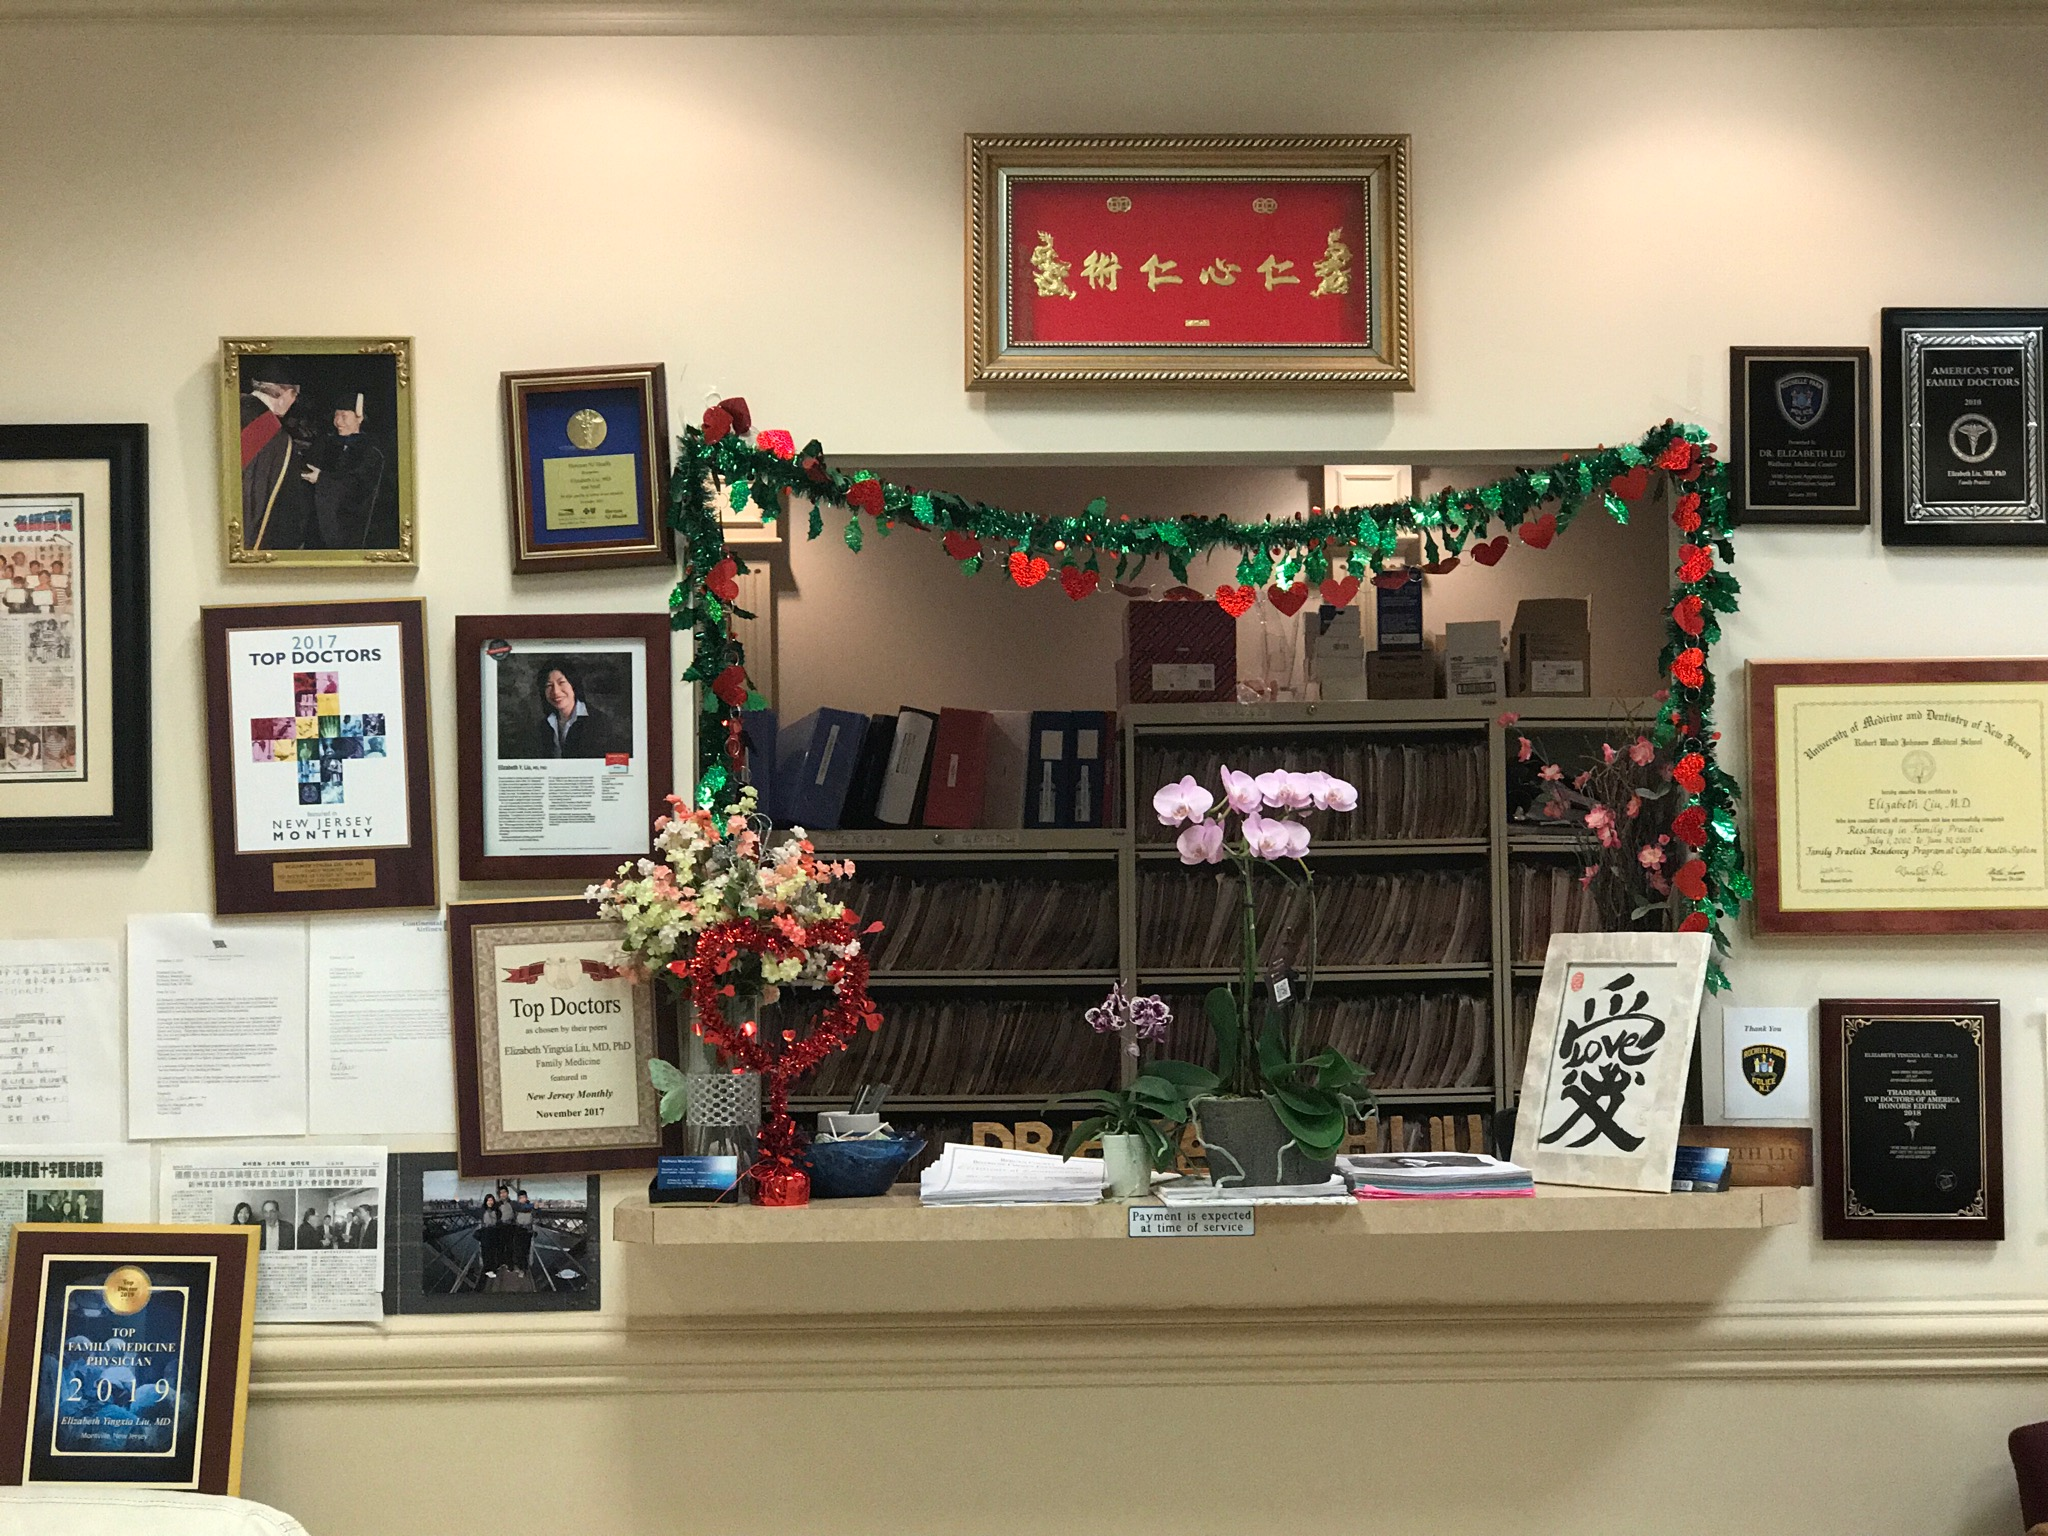 Dr. Liu's Office